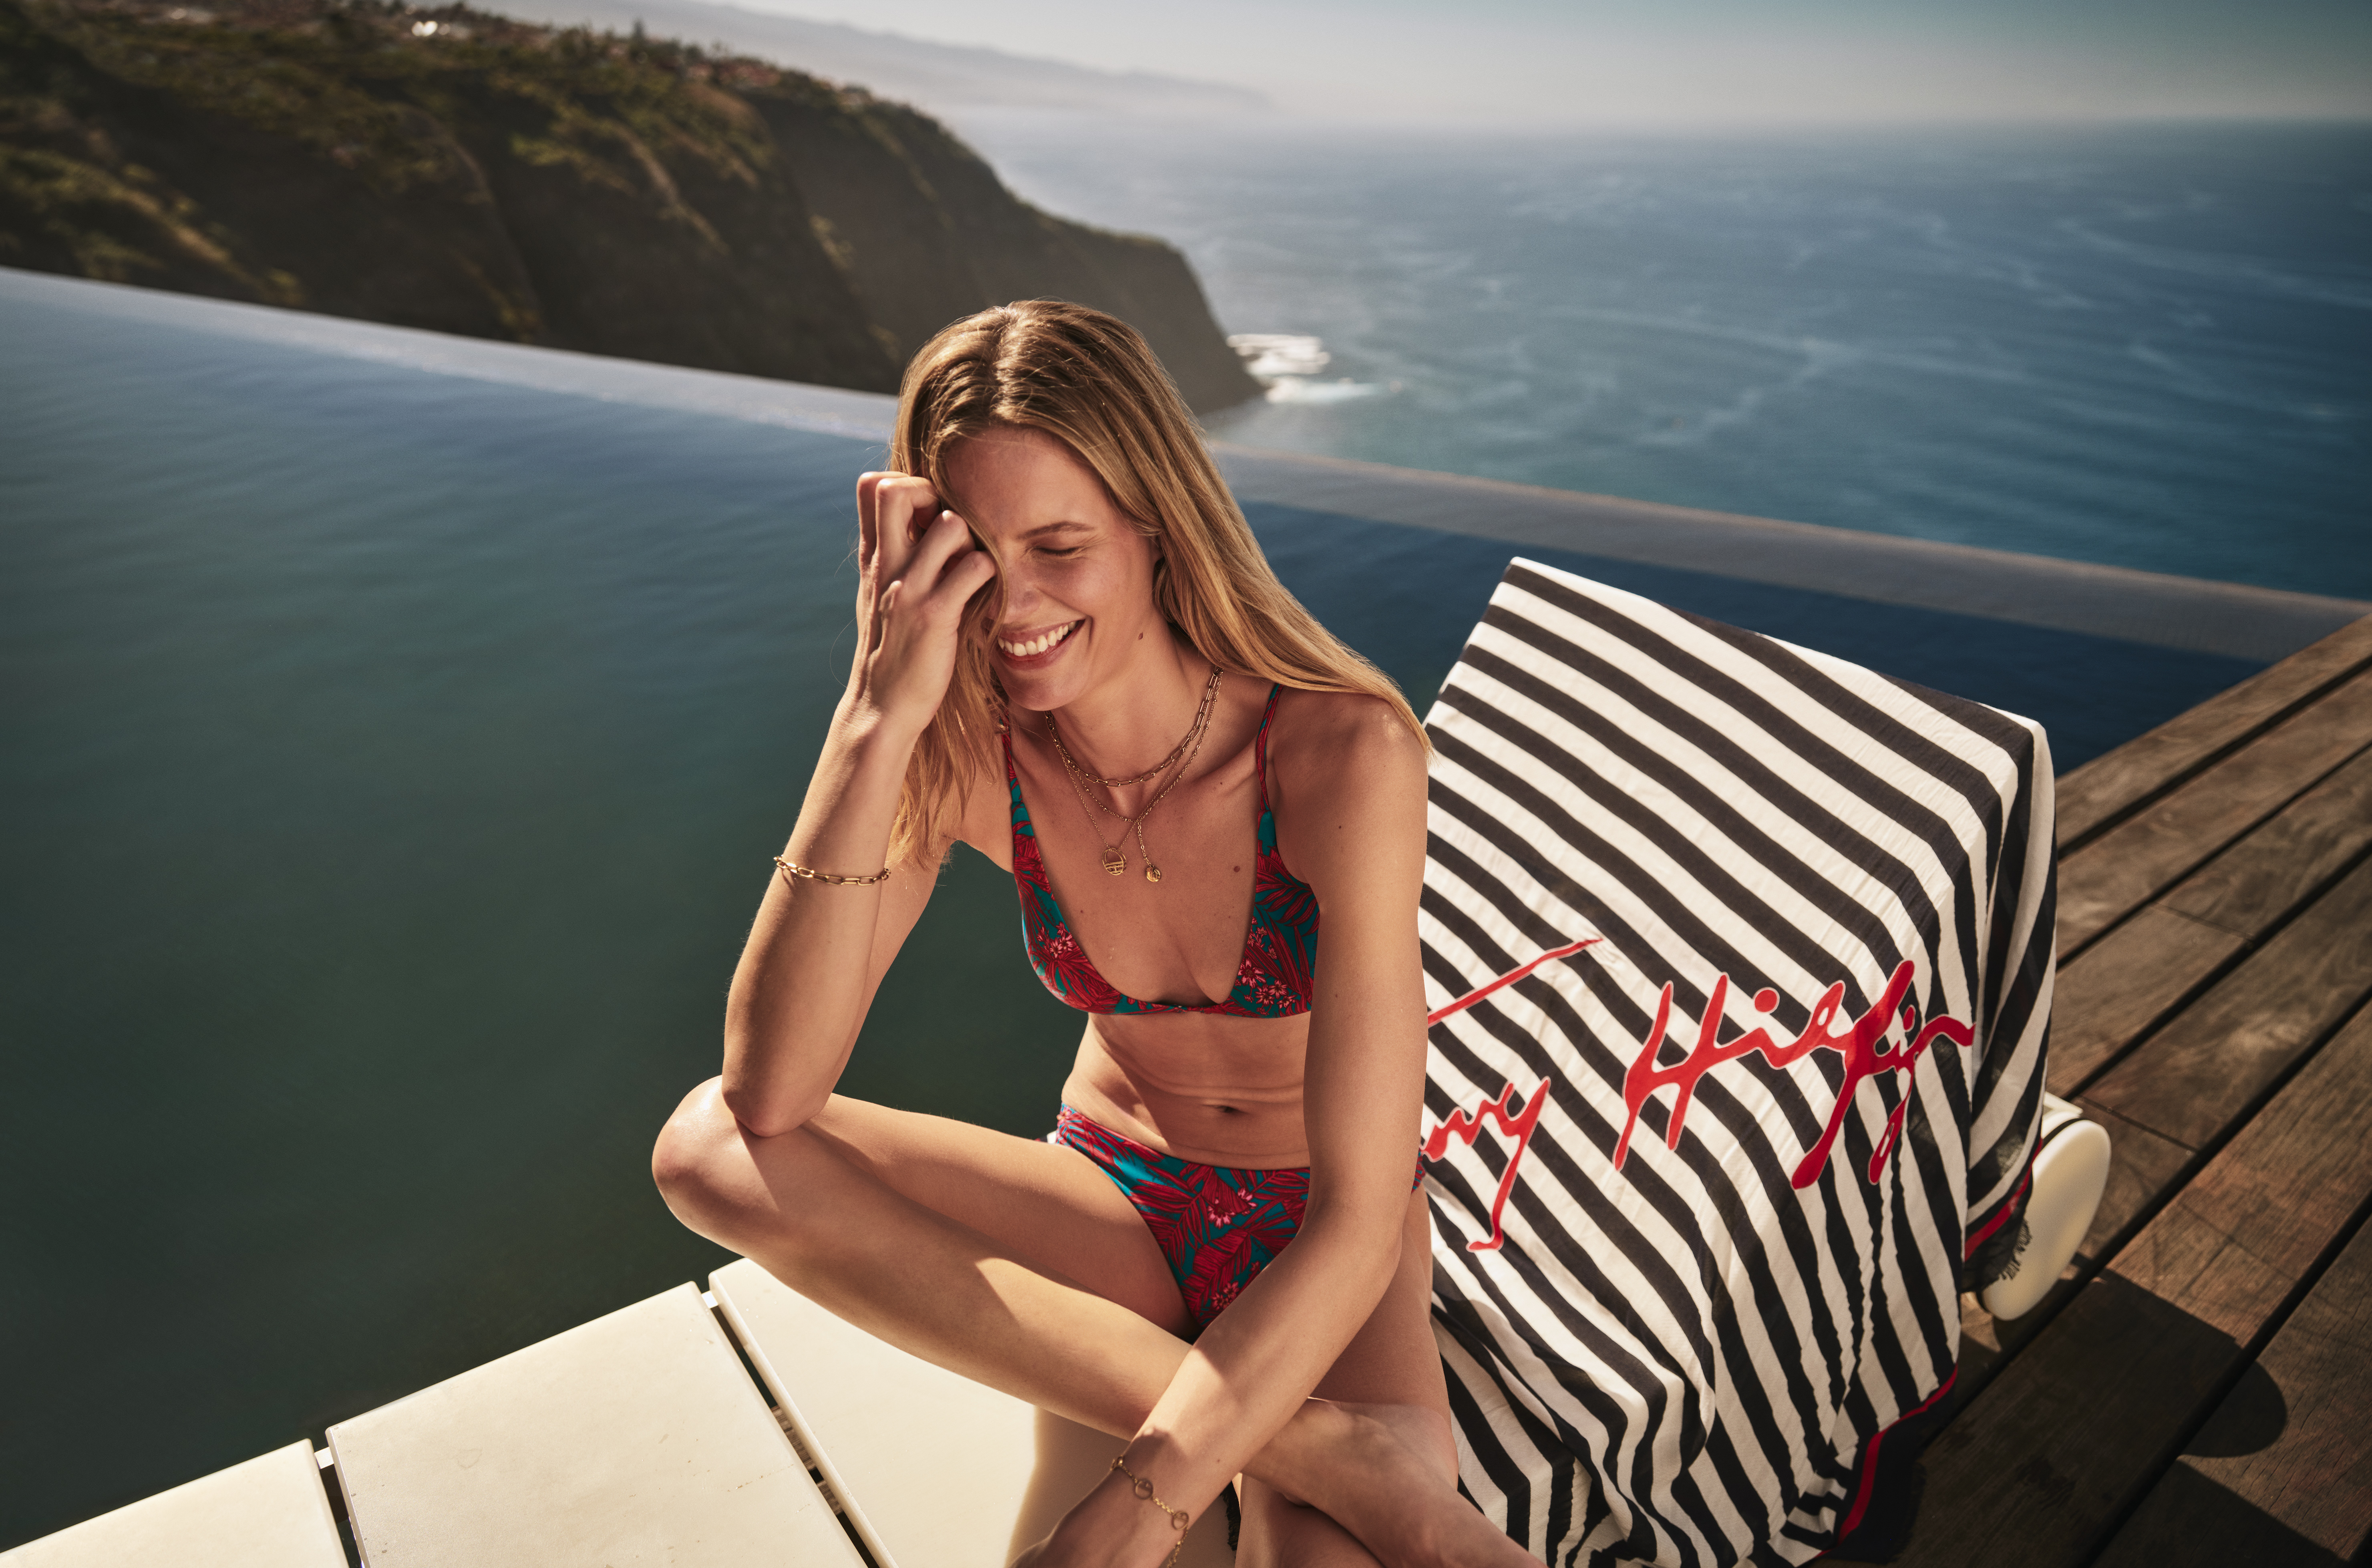 TOMMY HILFIGER RELEASES A SUSTAINABLE SWIMWEAR COLLECTION THIS SEASON